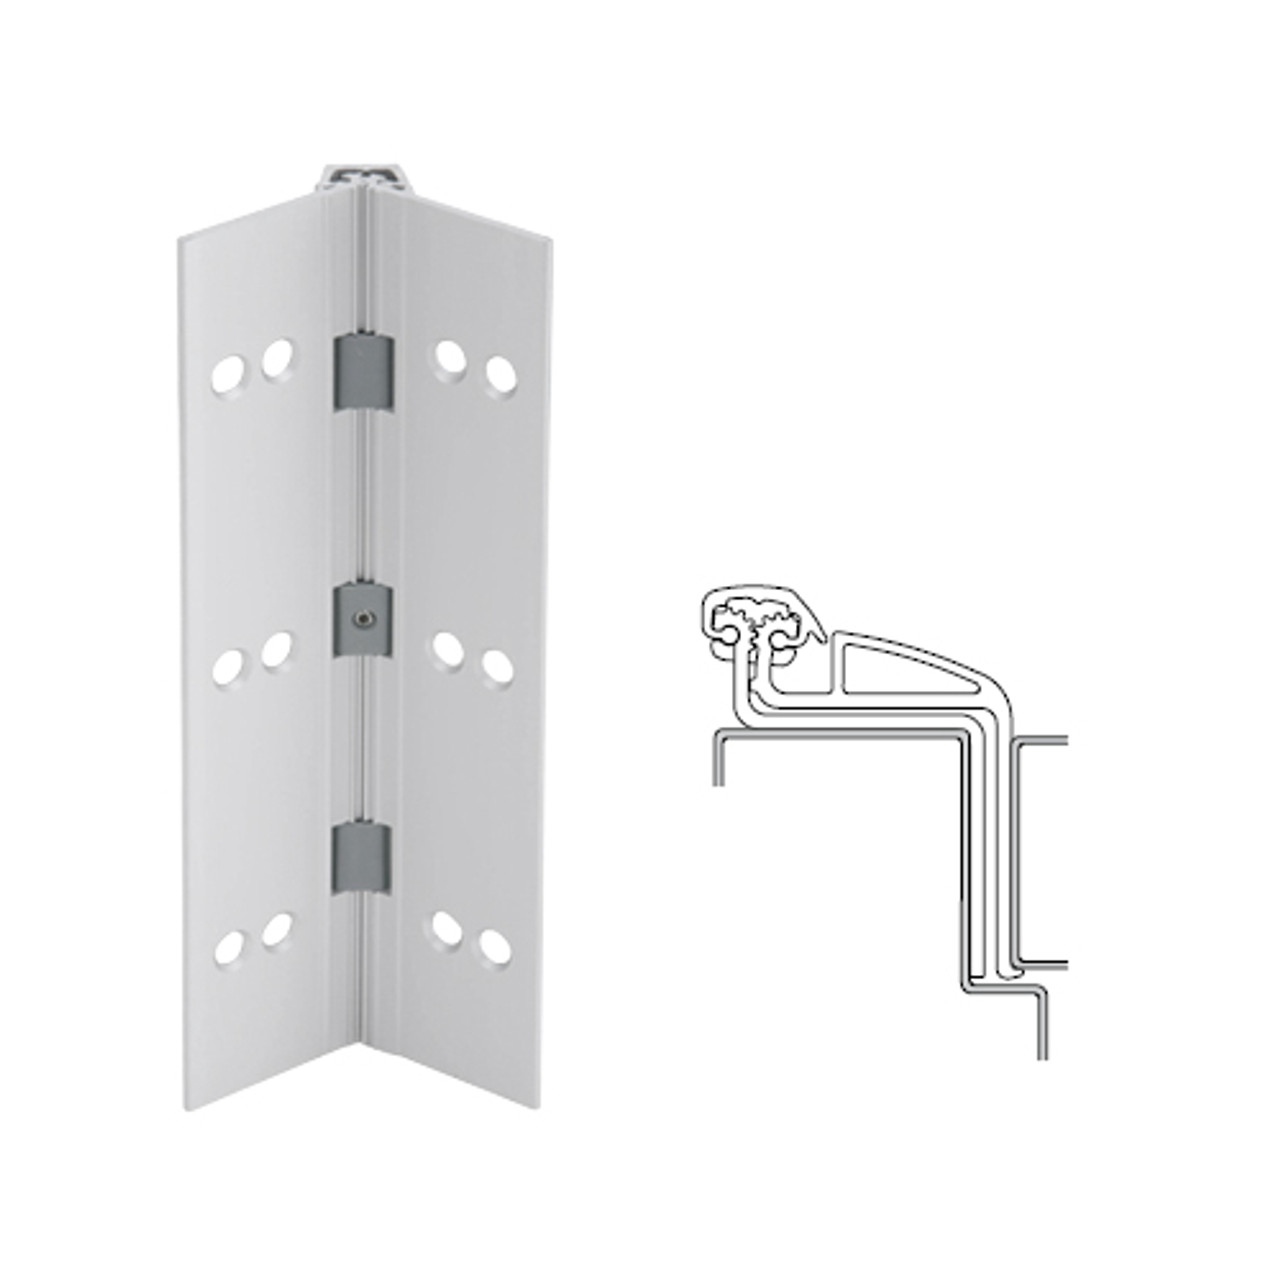 041XY-US28-83-SECHM IVES Full Mortise Continuous Geared Hinges with Security Screws - Hex Pin Drive in Satin Aluminum